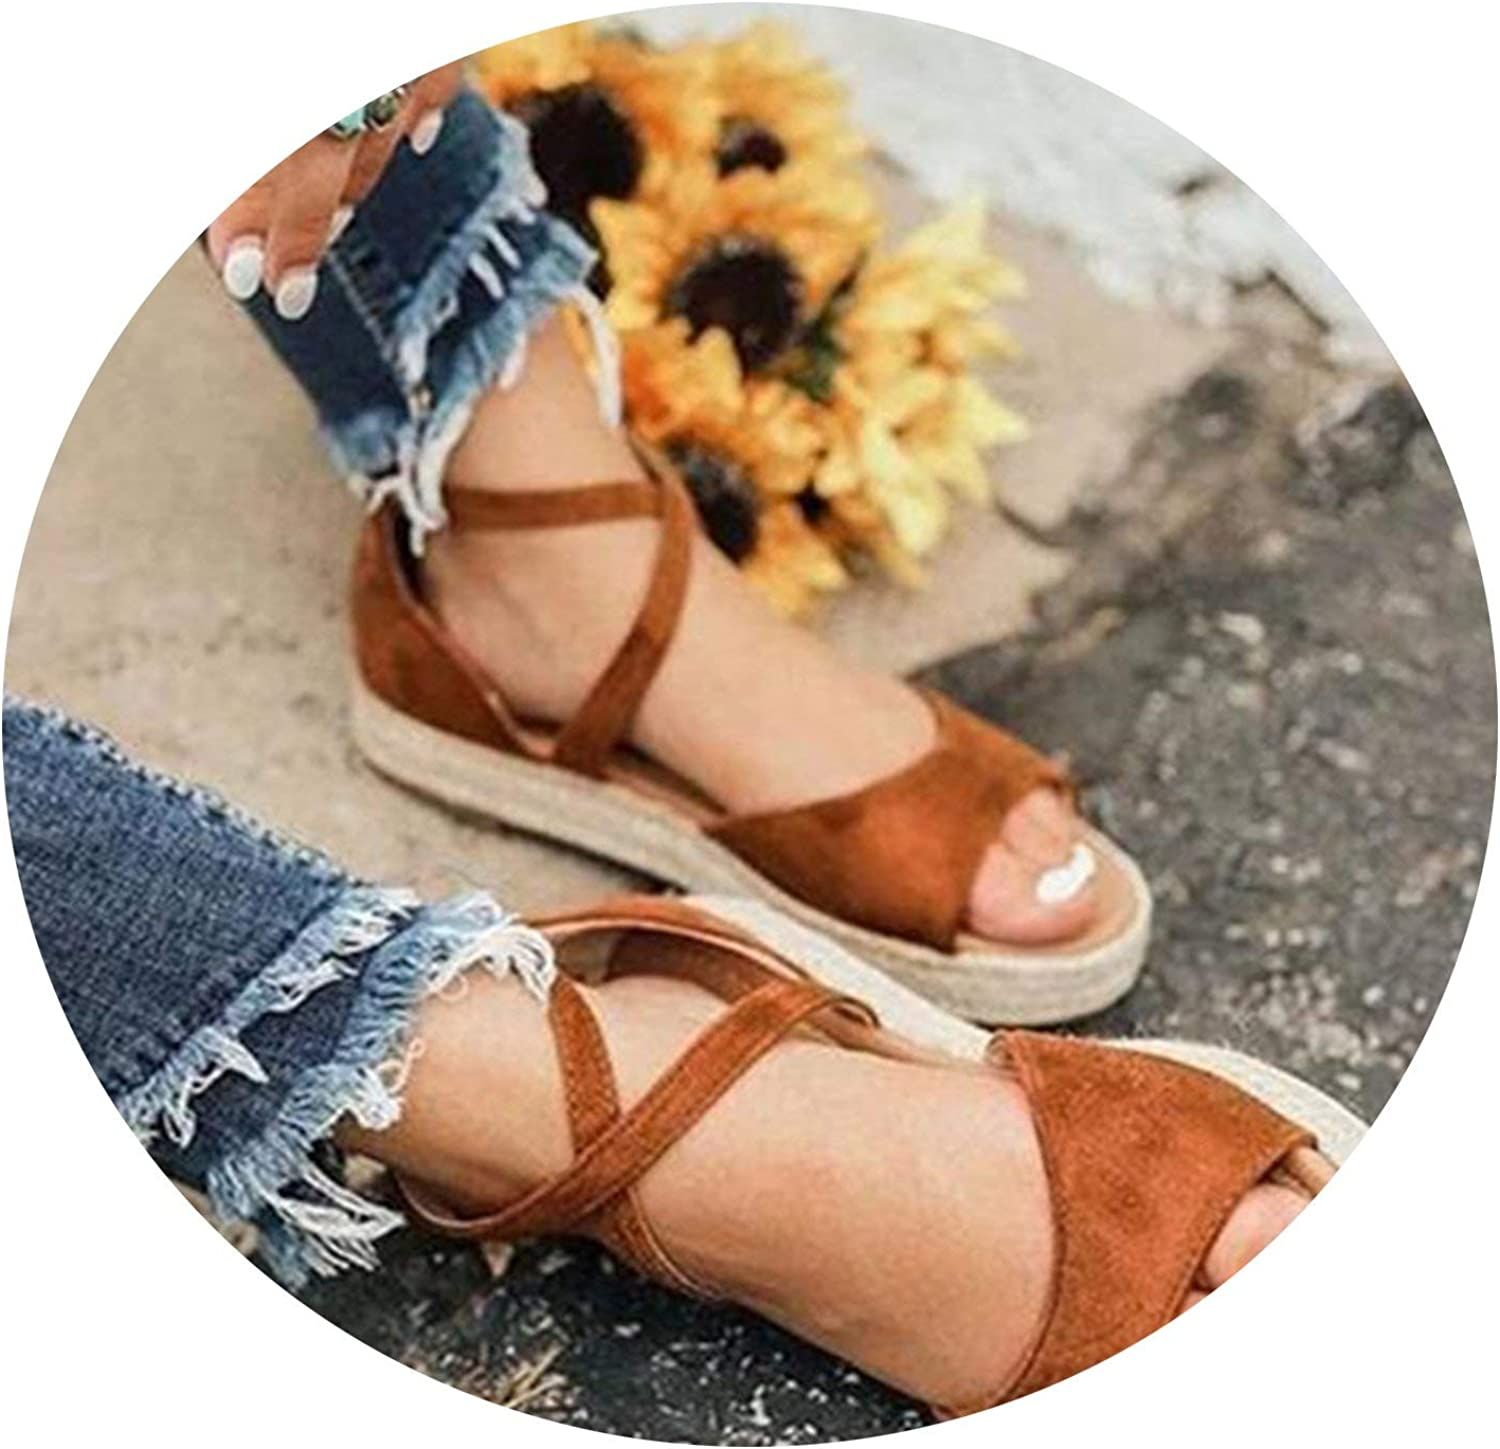 Jhdnhse Women Sandals Rome Style Summer shoes Flat Anti Skidding Beach shoes Plus Size Low Heel Sandalias,Brown,4.5